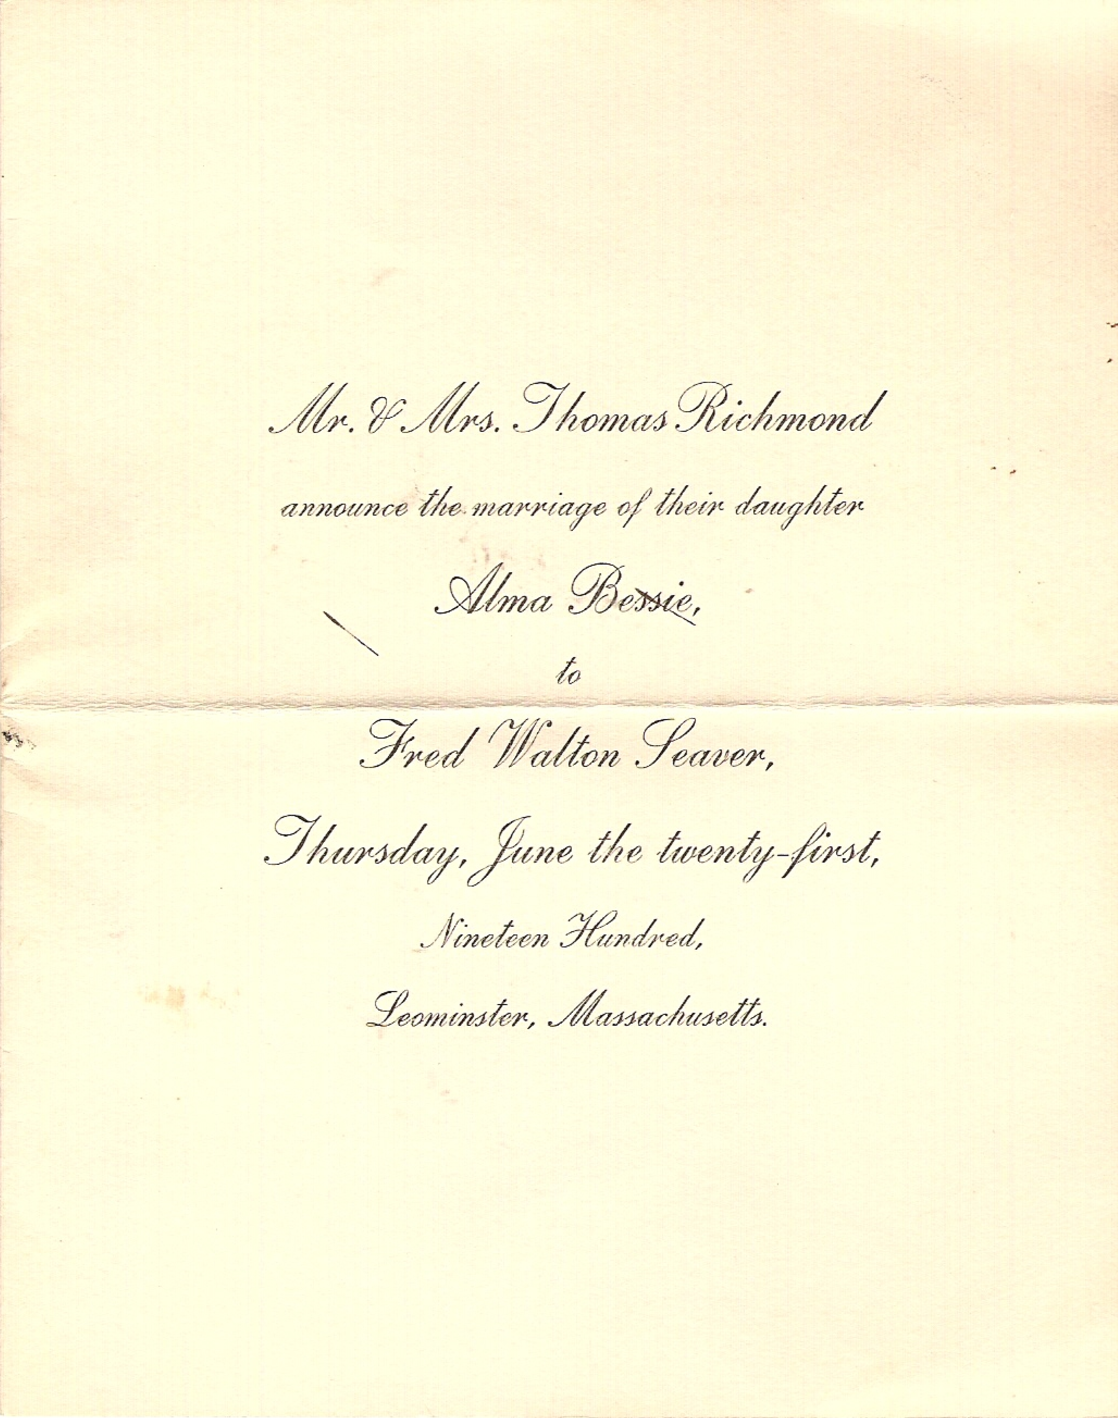 wedding invitation from 1900